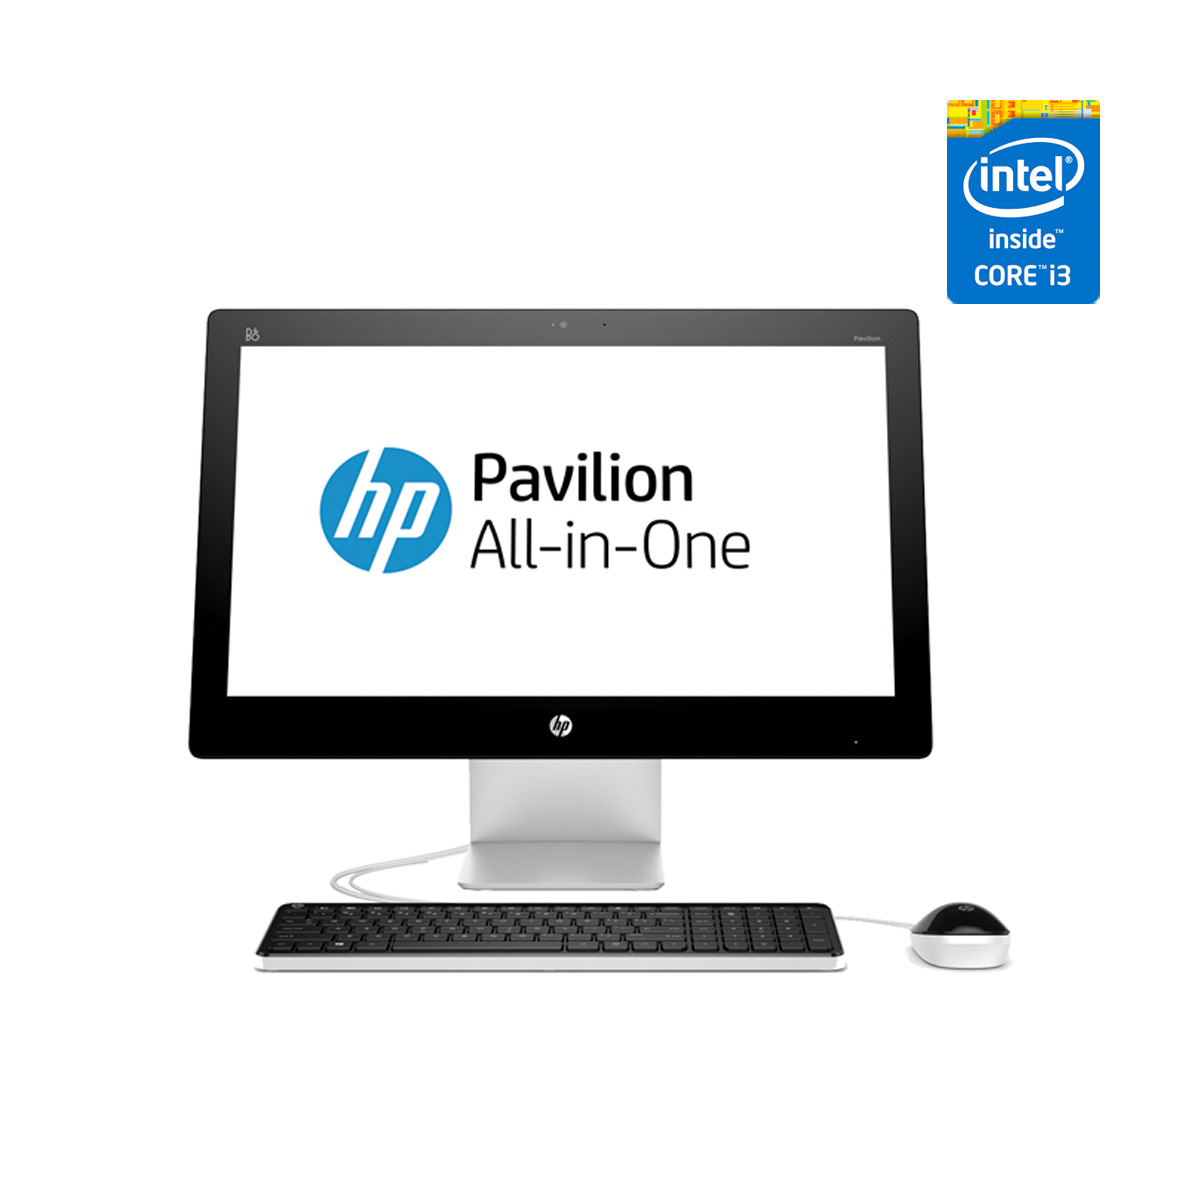 Ordenador sobremesa HP Pavilion All in One 23-q020ns Intel Core i3-4170T